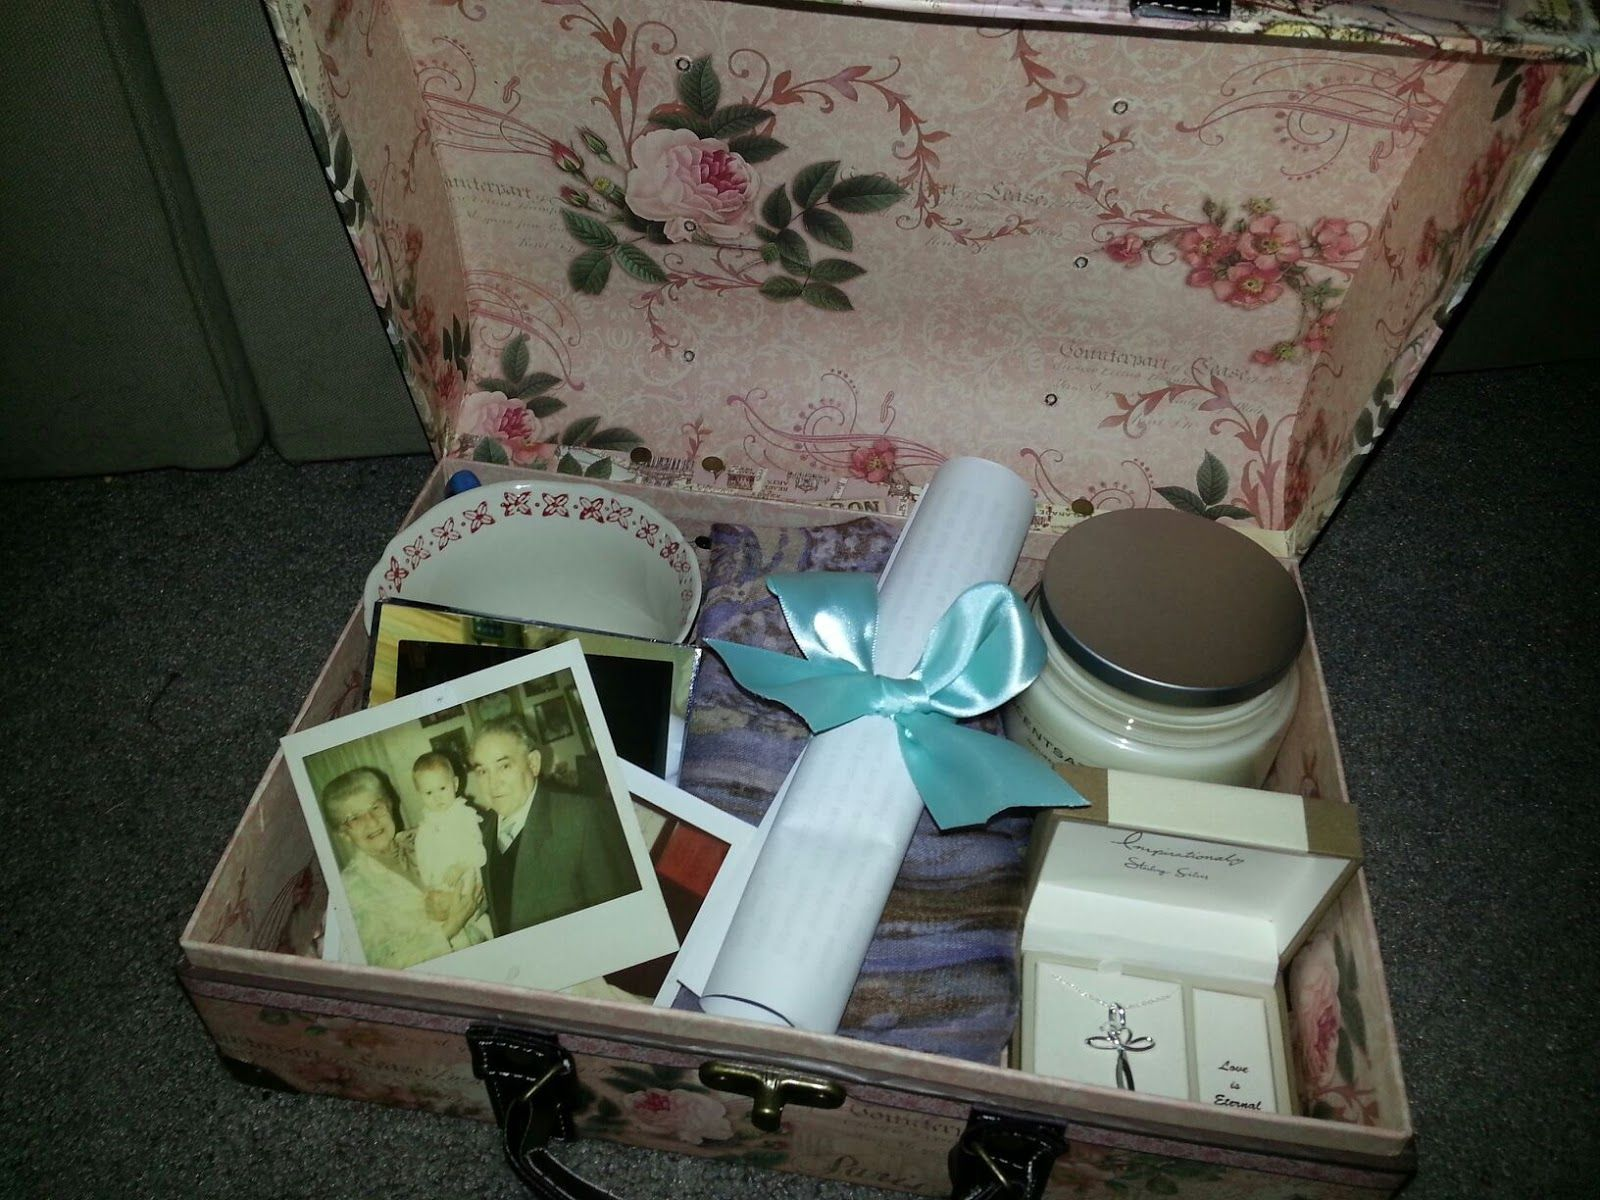 For My Grandmothers 90th Birthday I Made Her A Memory Box With Letter Taking Down Lane And Explaining Each Item In The